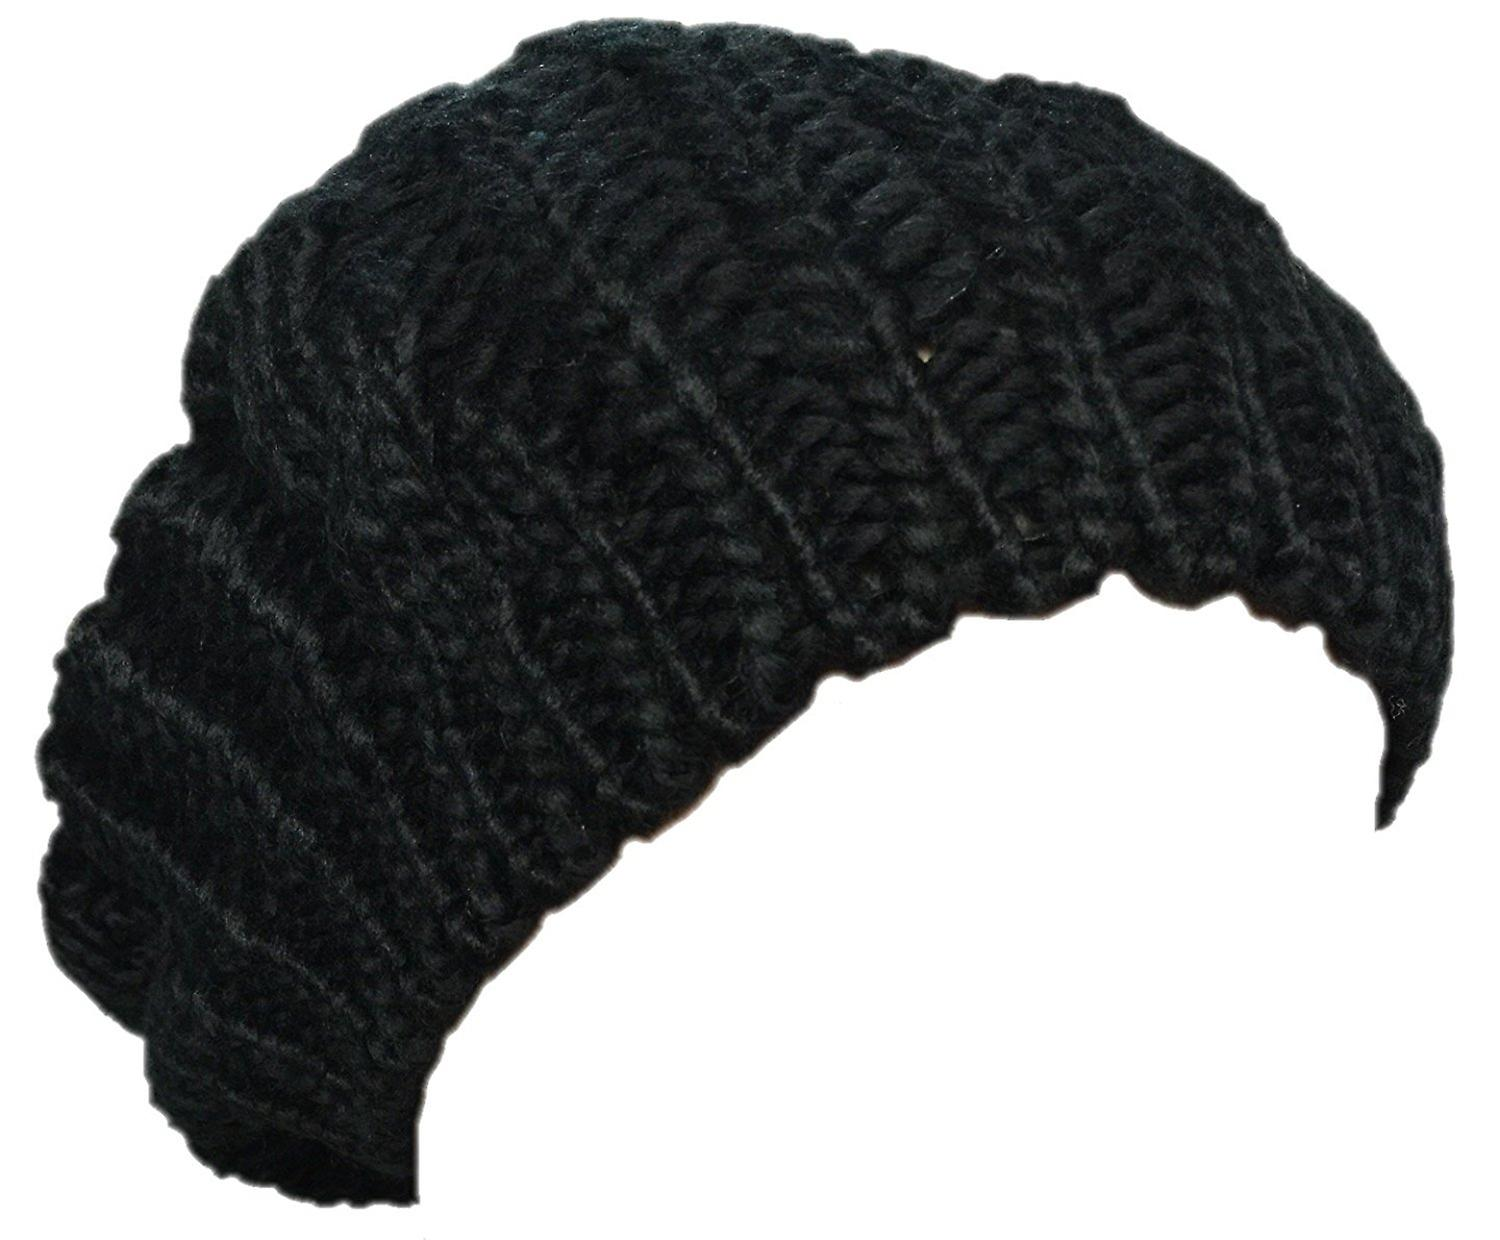 6738a594c7cab New Arrivals Lady Winter Warm Knitted Crochet Slouch Baggy Beret Beanie Hat  Cap